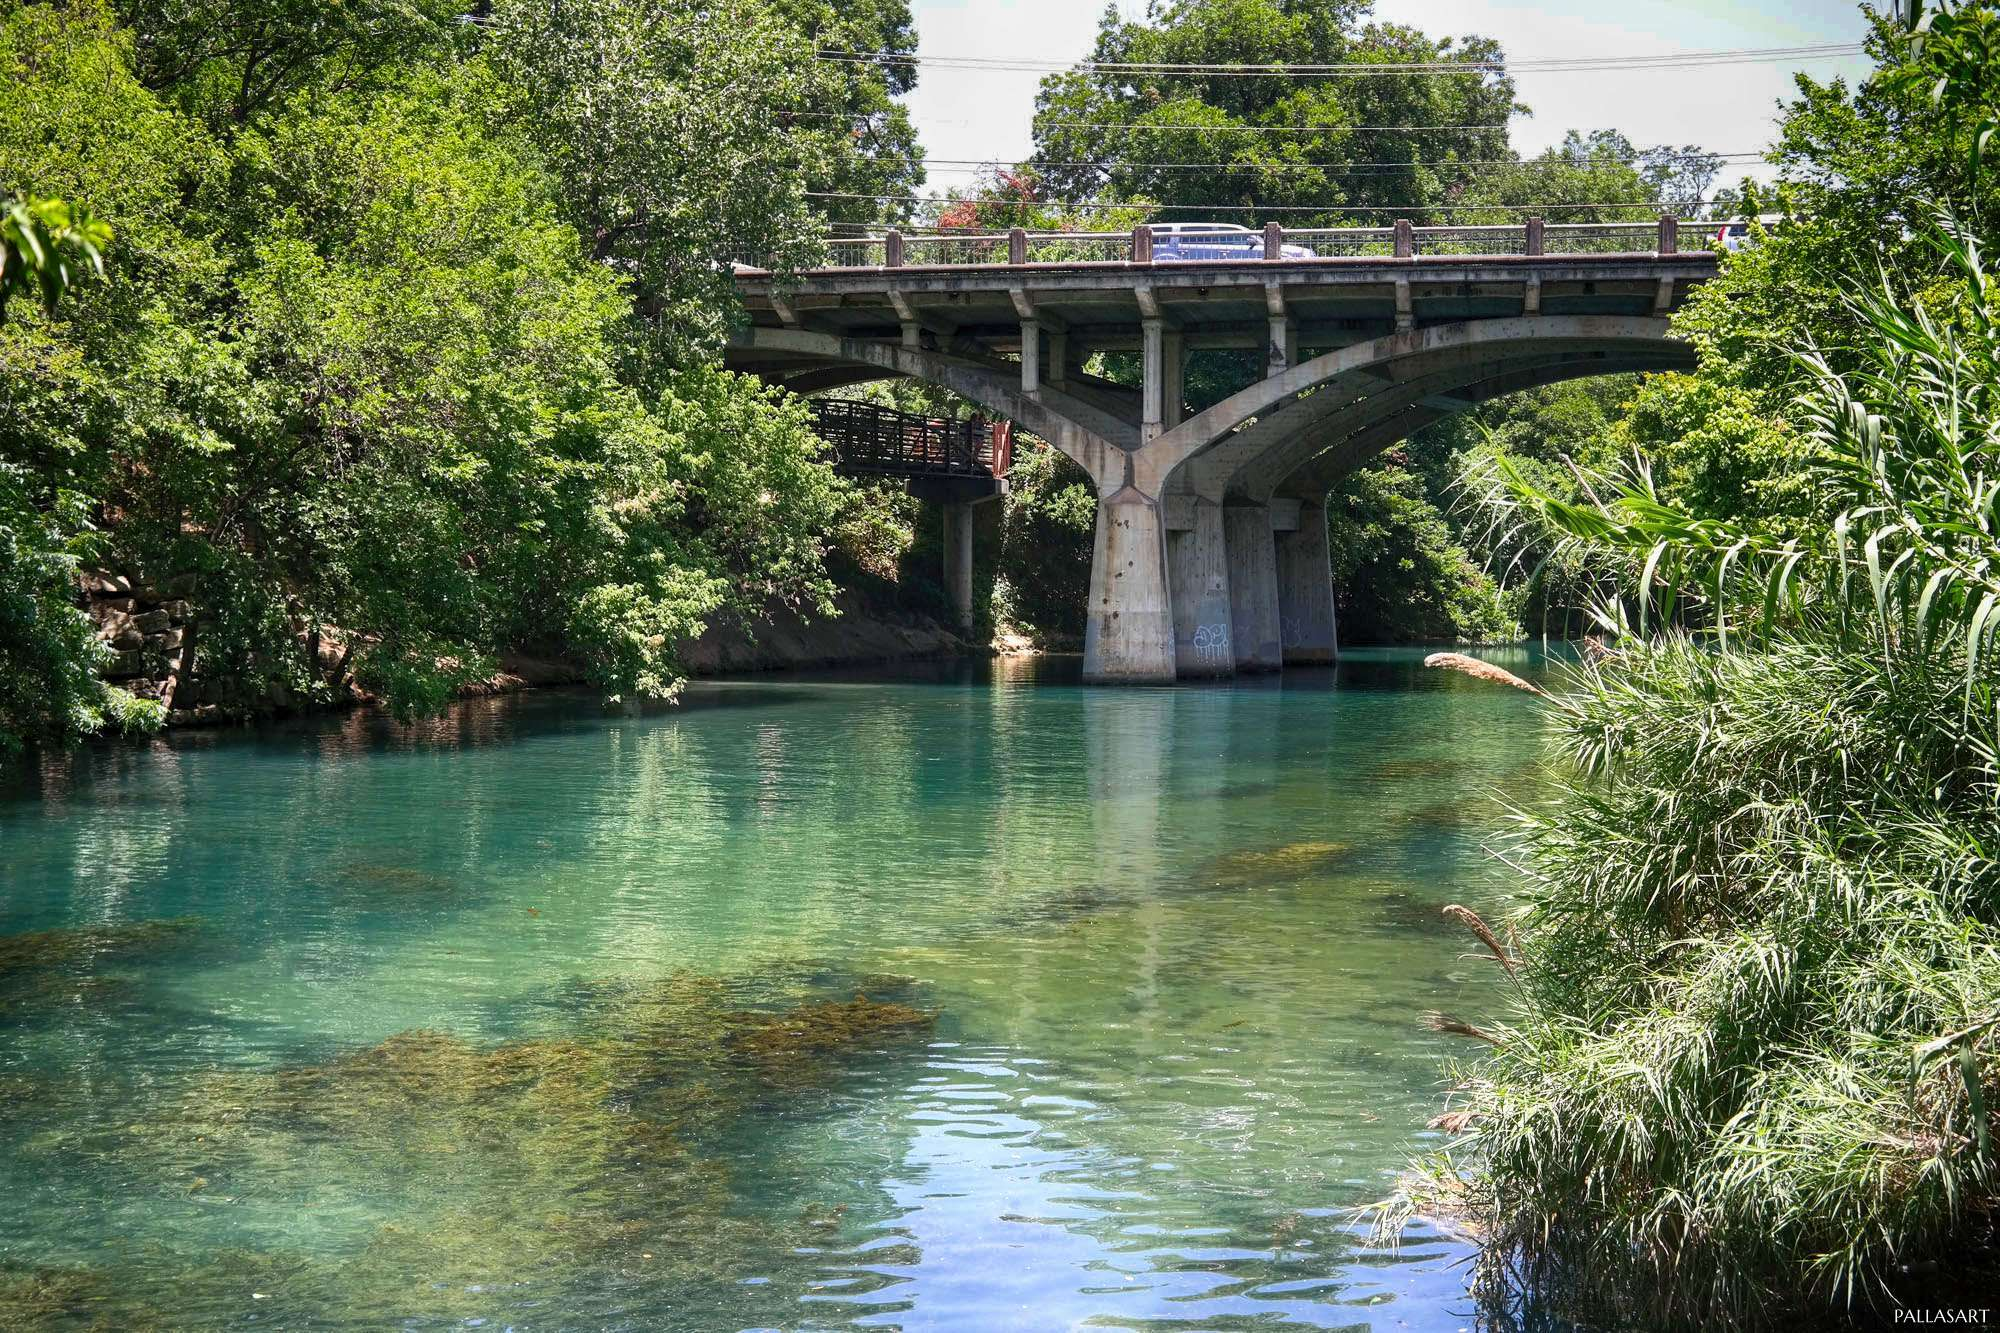 Barton Springs Road Bridge over Barton Creek